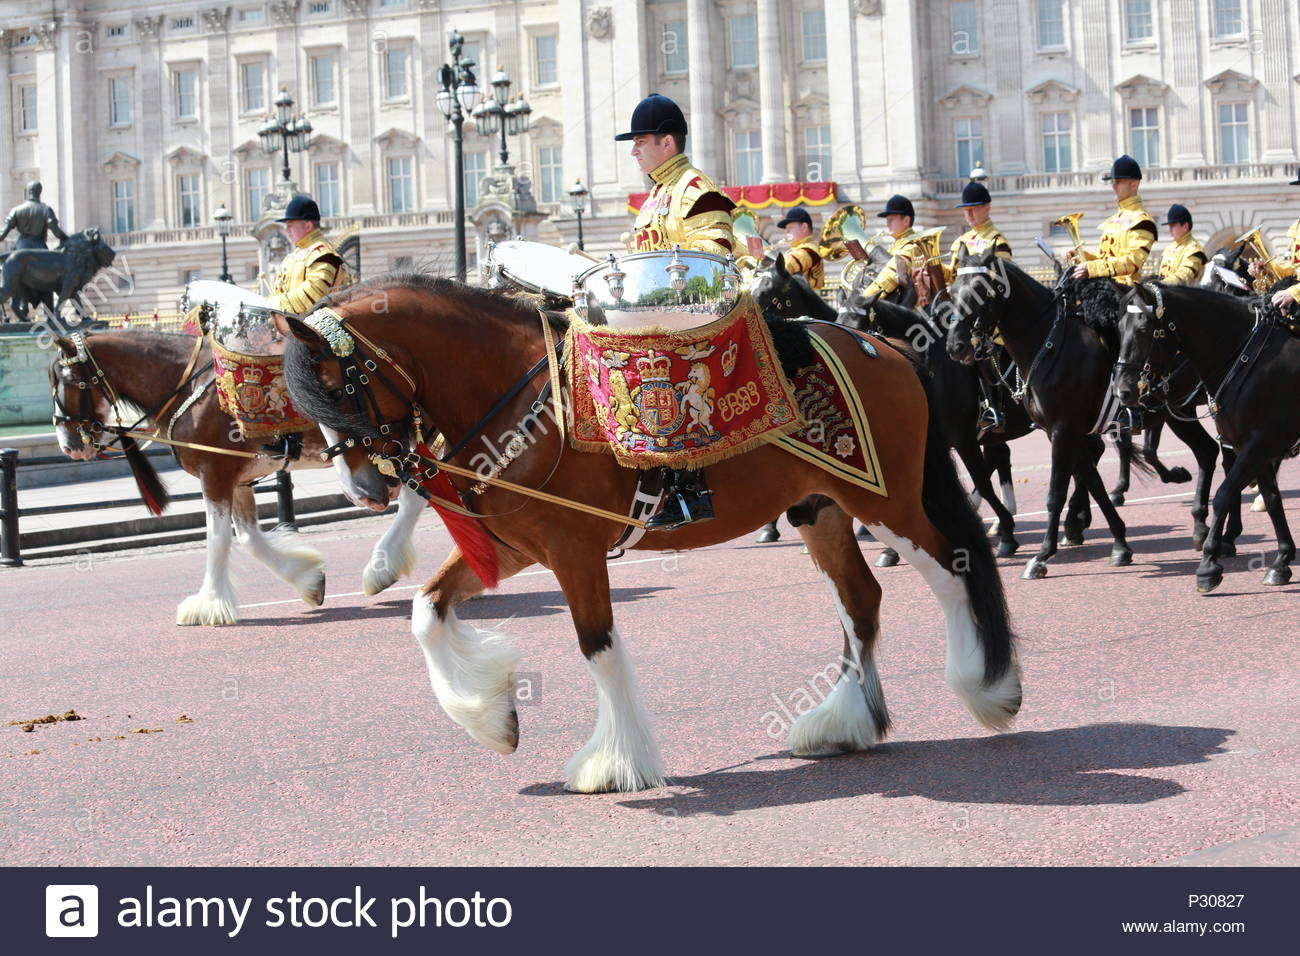 The annual Trooping the Colour has taken place in London in honour of Queen Elizabeth's birthday. Thousands lined the streets to welcome Her Majesty a - Stock Image